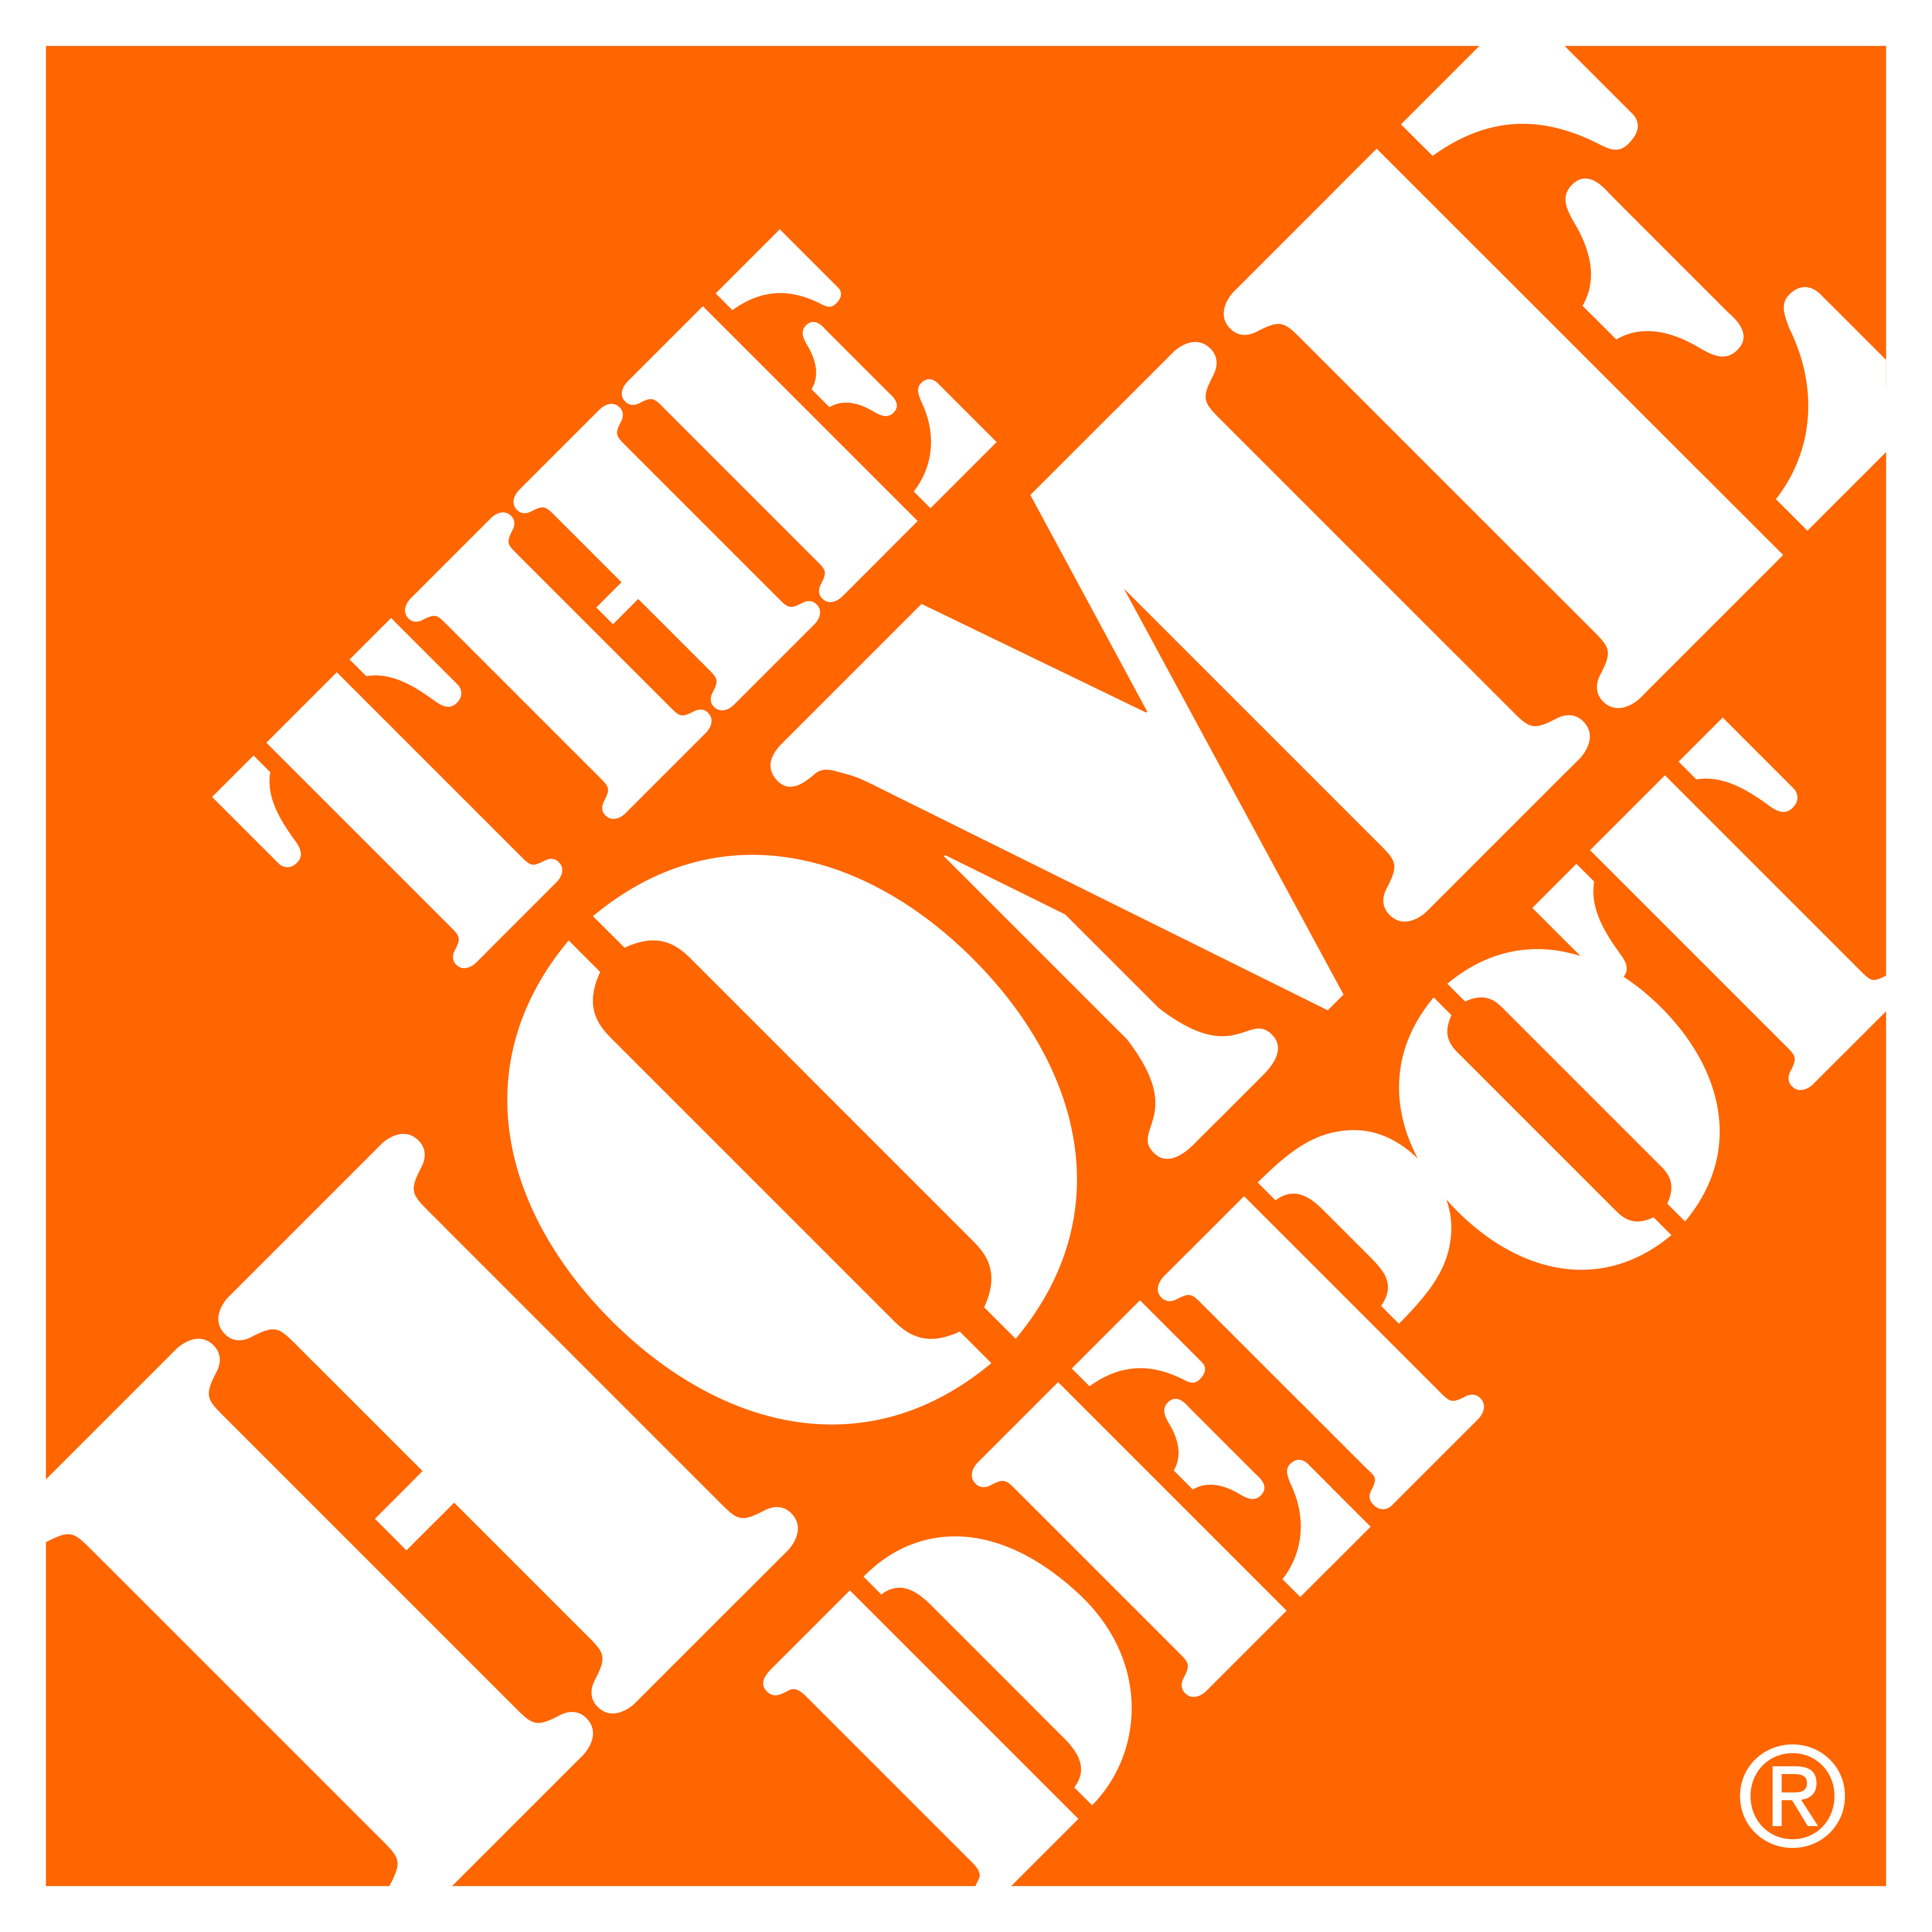 HD Supply Acquired By The Home Depot